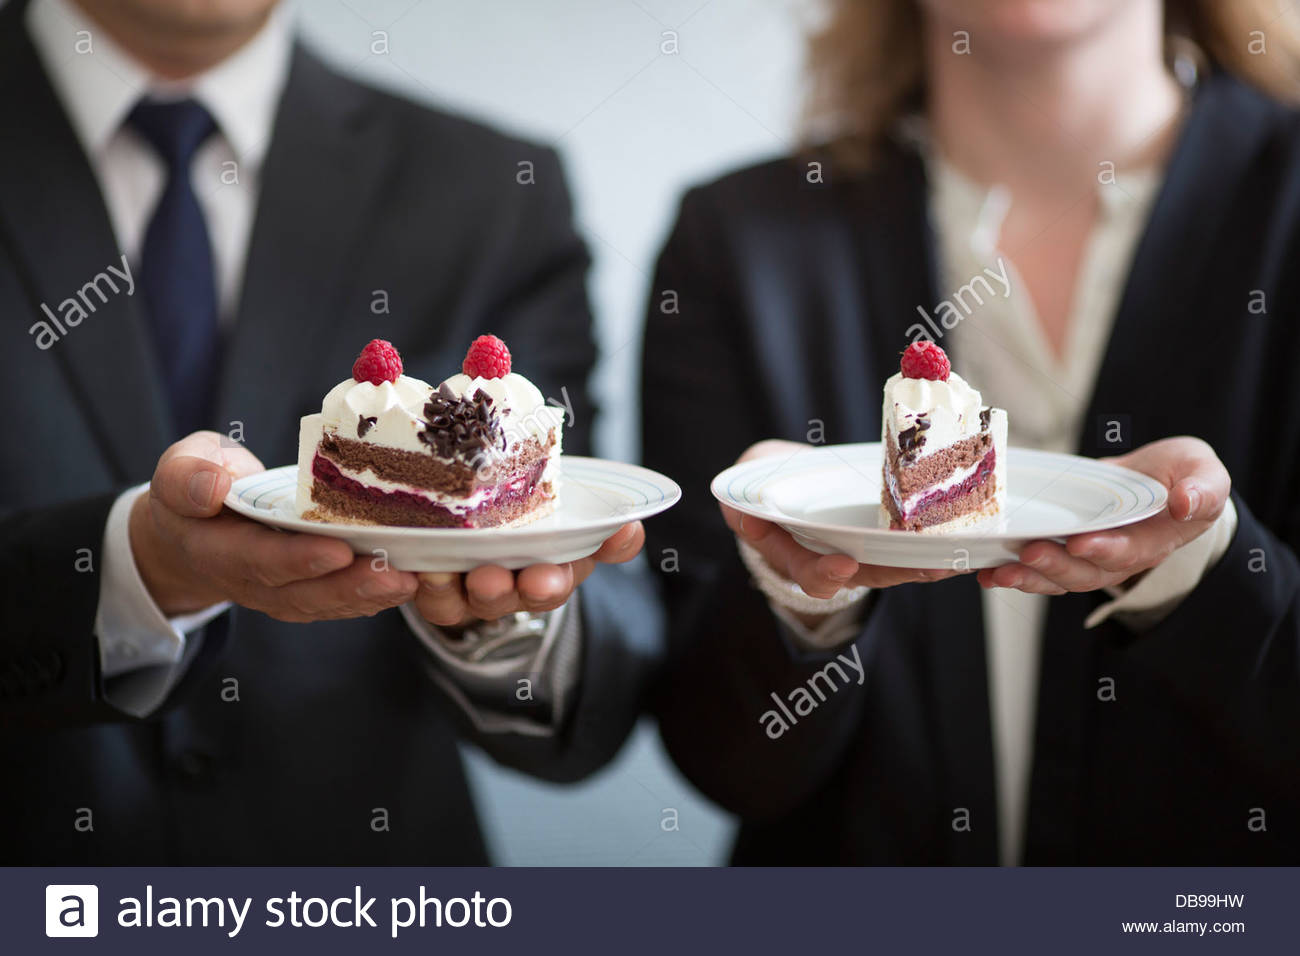 Permanent Records In Performance Plates Of Cake & Plates Of Cake - The Best Cake Of 2018